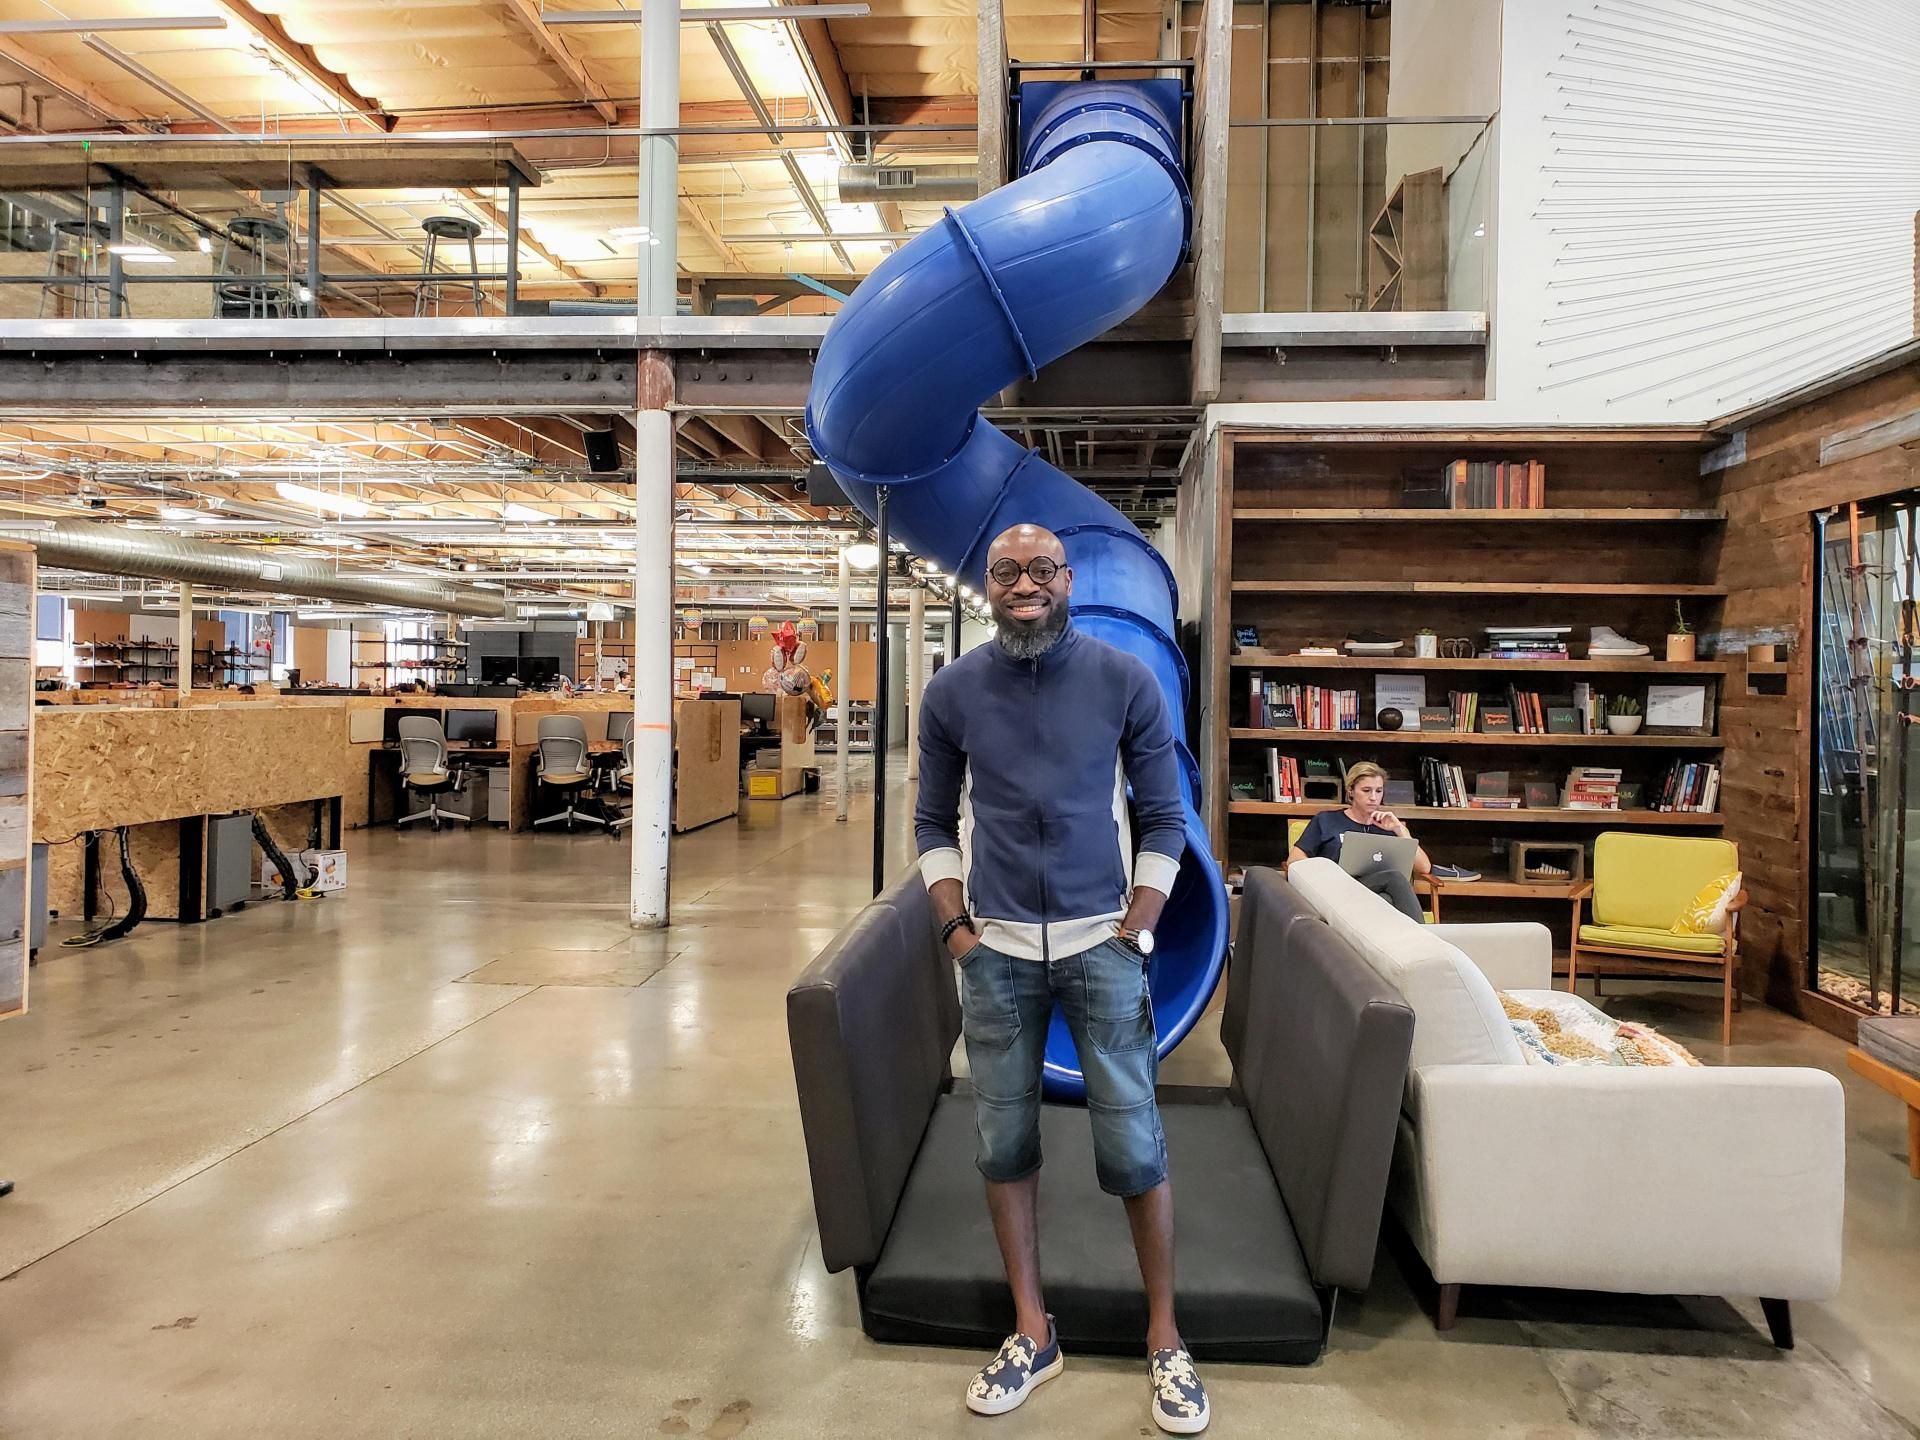 TOMS Facilities Coordinator Peter Efezokhae poses in front of a spiral slide inside TOMS' headquarters in Playa Vista.